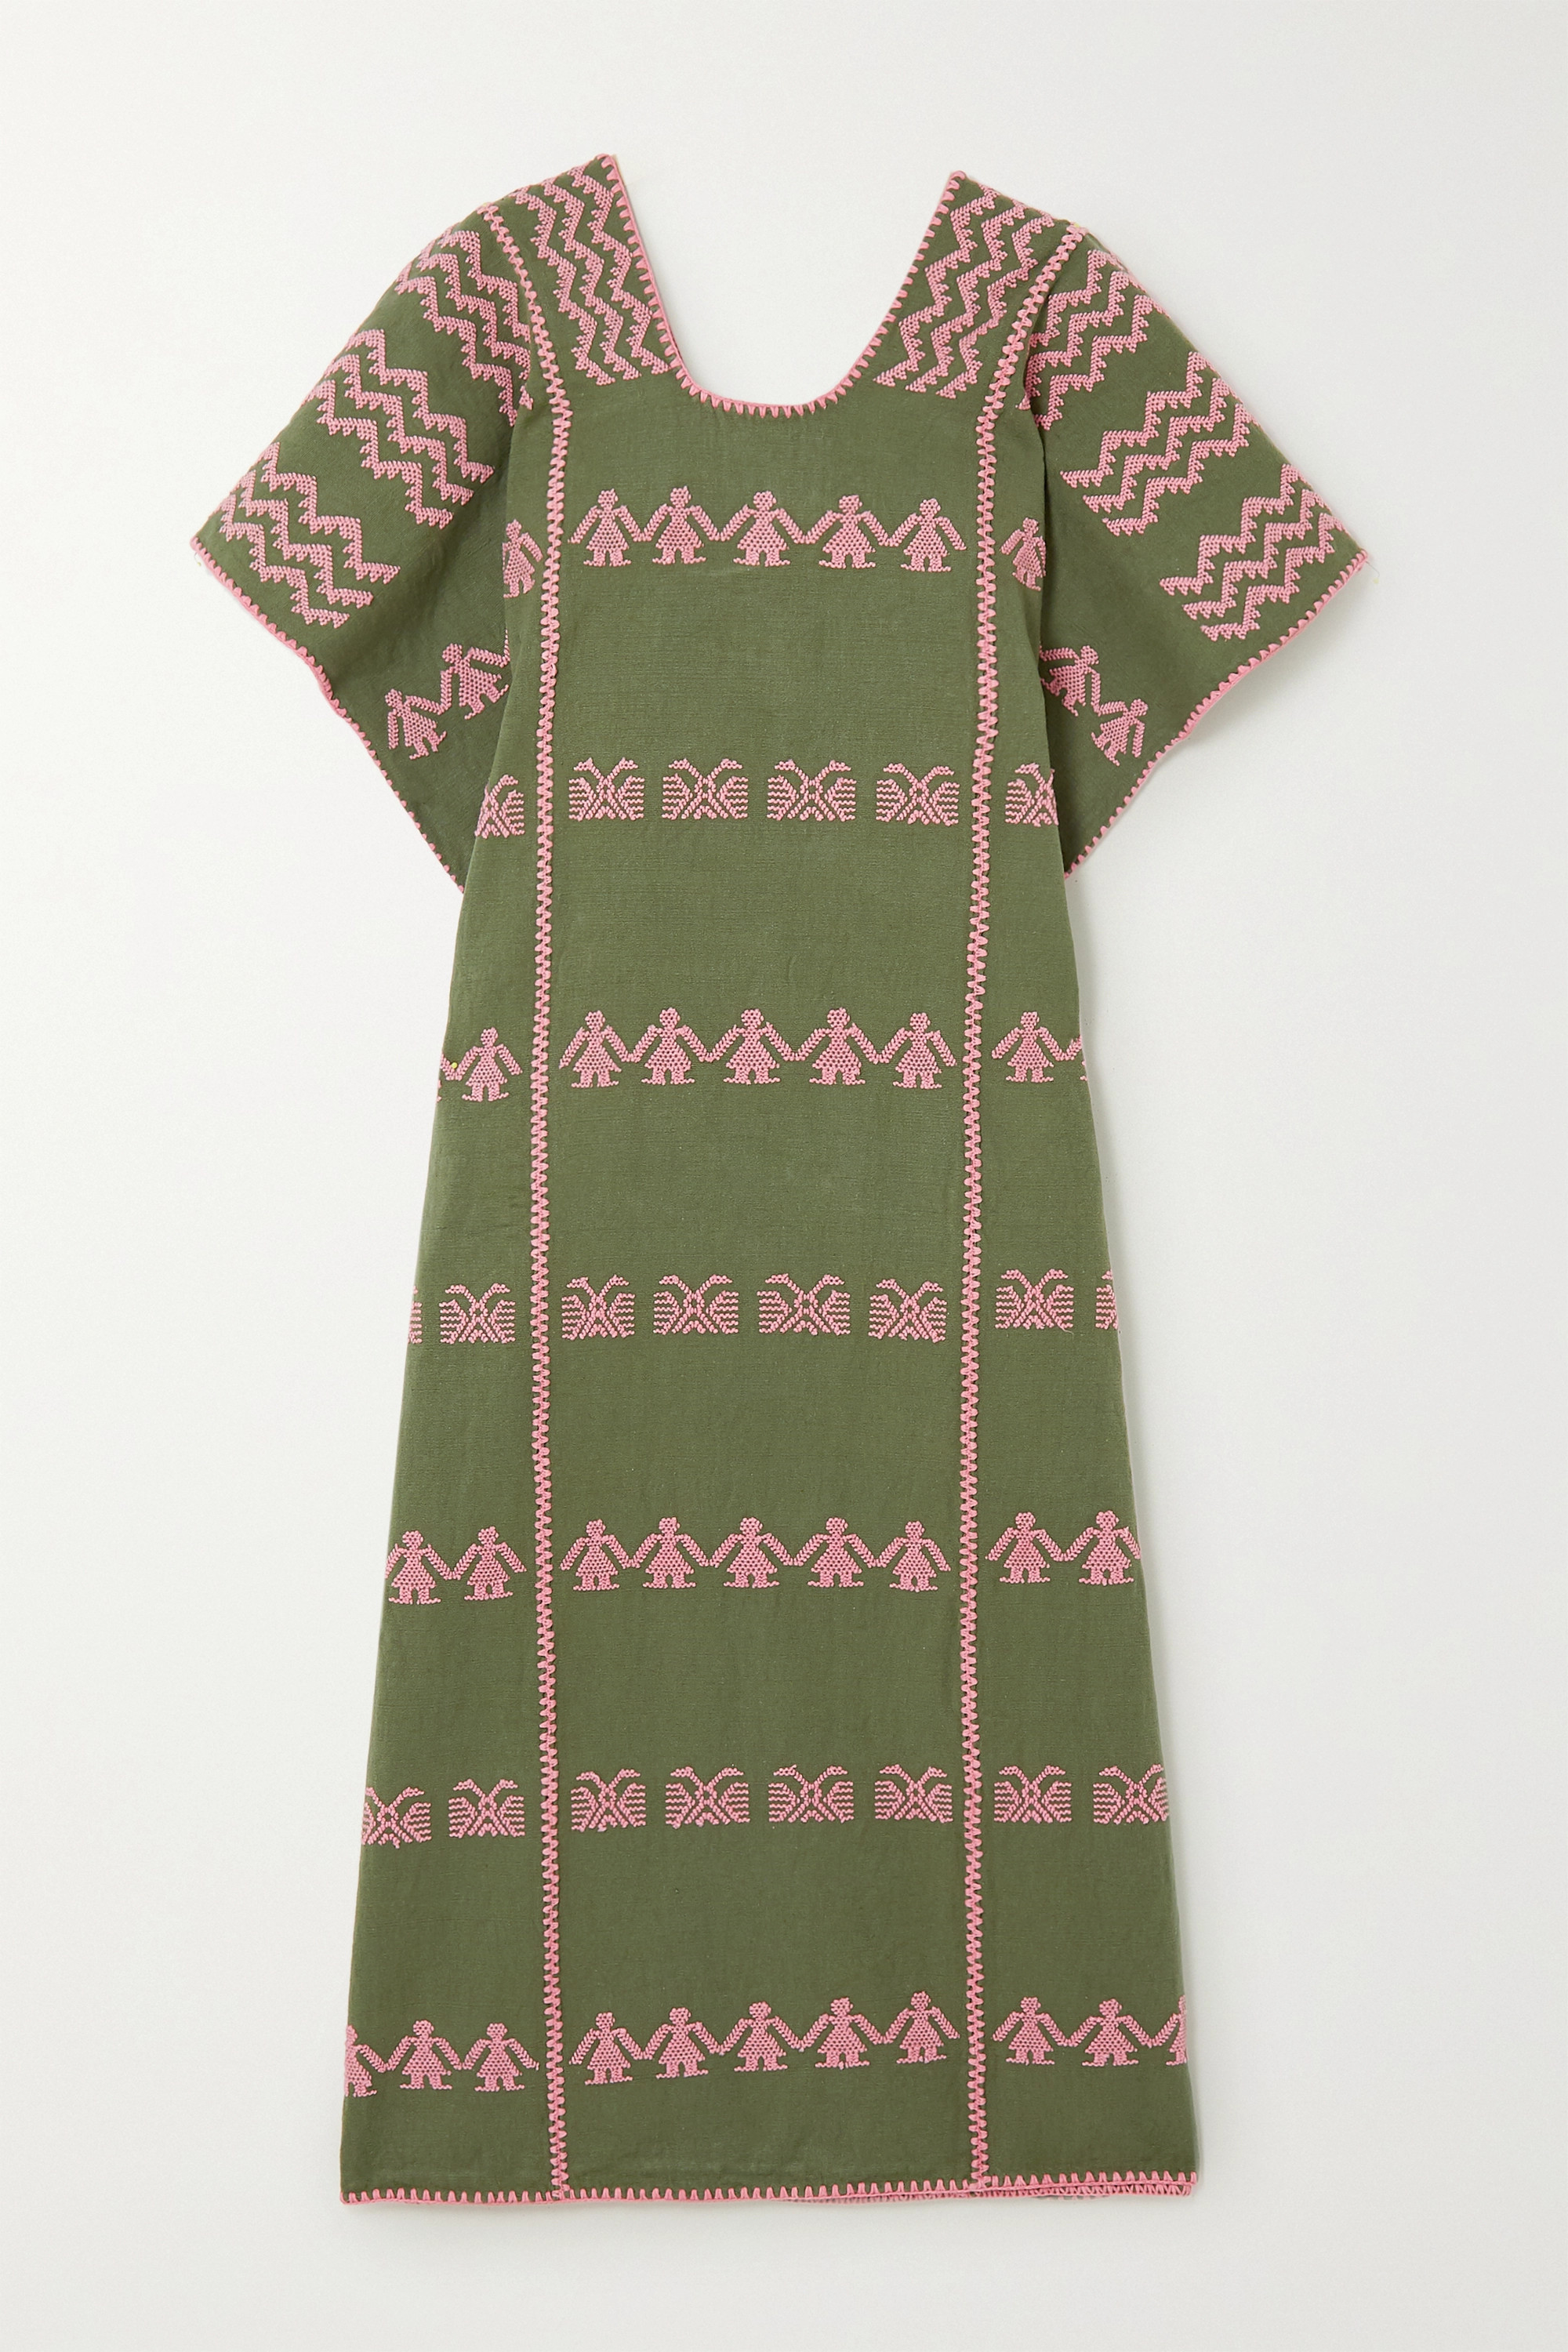 Pippa Holt + NET SUSTAIN embroidered cotton huipil